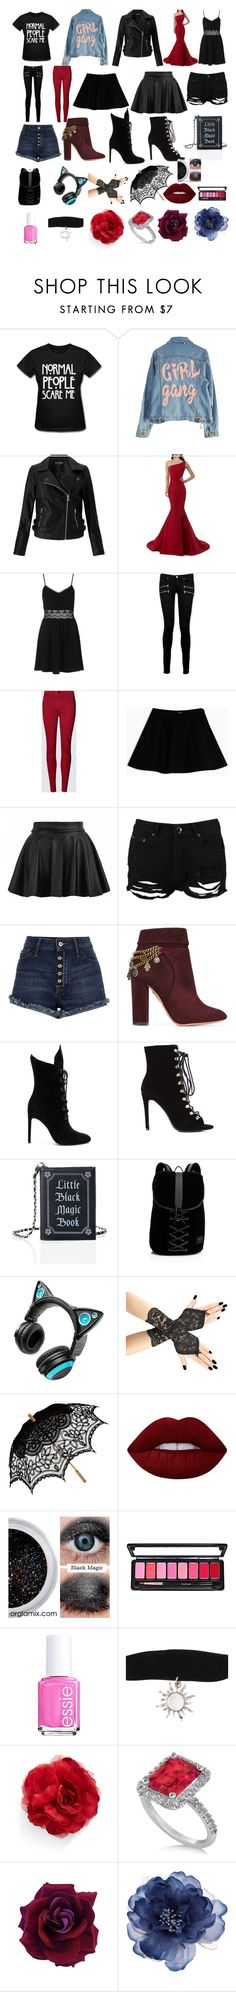 """""""everyday"""" by ciel-phantomhive12 ❤ liked on Polyvore featuring High Heels Suicide, Miss Selfridge, Topshop, Paige Denim, Max&Co., Boohoo, River Island, Aquazzura, Kendall + Kylie and Current Mood"""